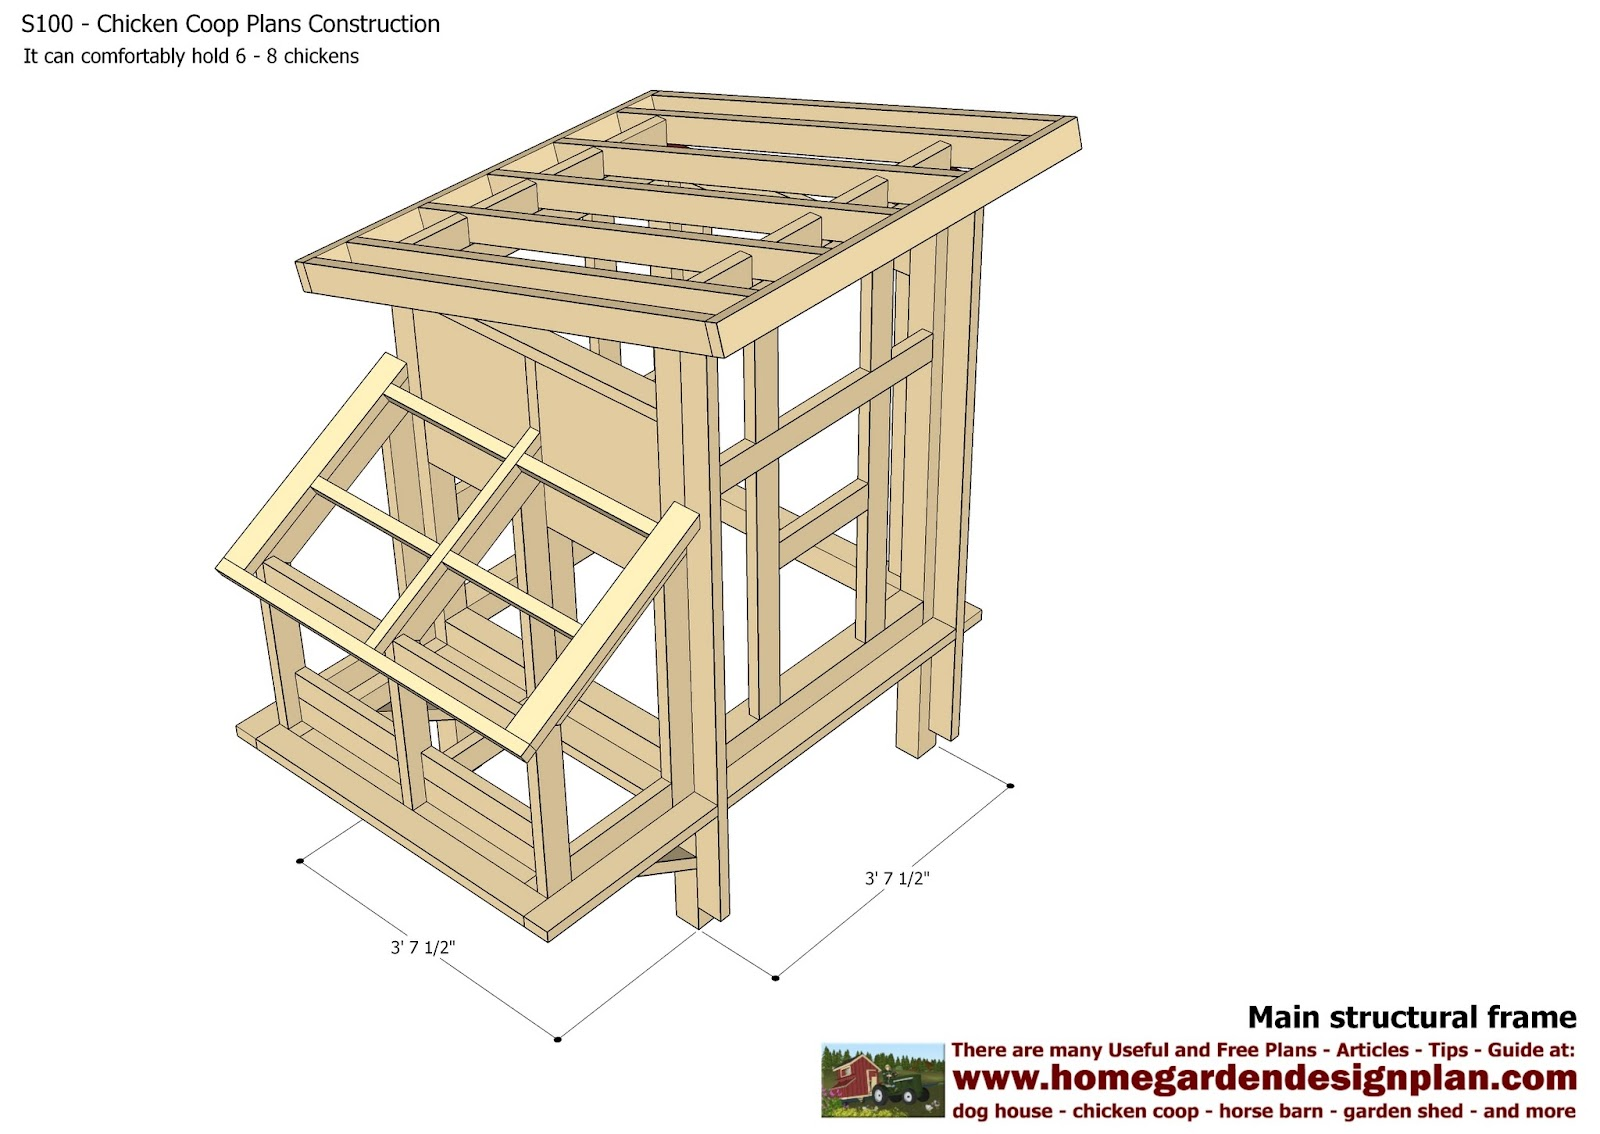 Home garden plans s300 chicken coop plans construction for Plans chicken coop